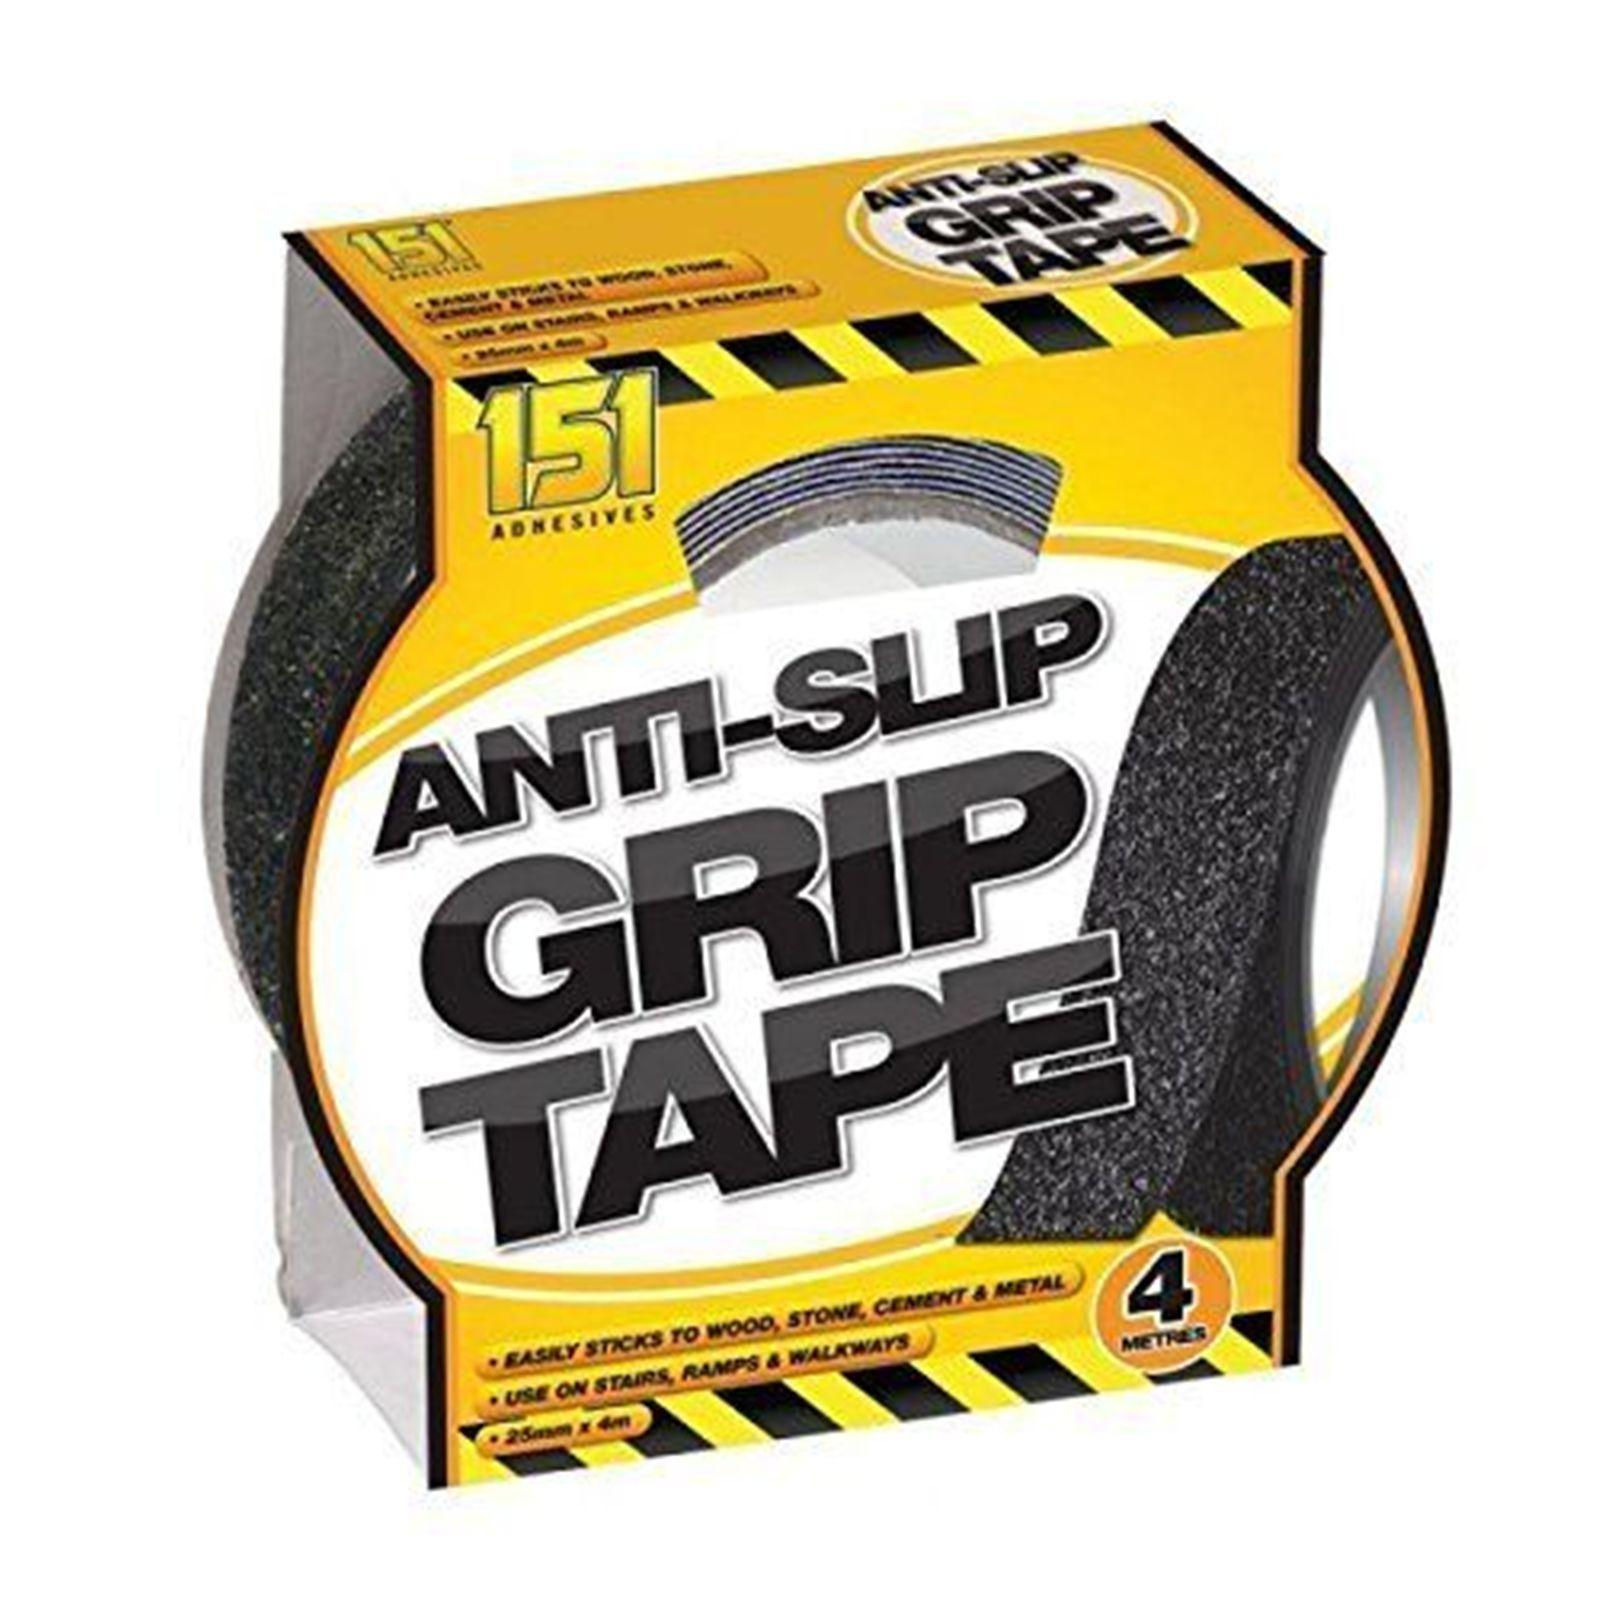 Anti-slip Grip Tape 4m